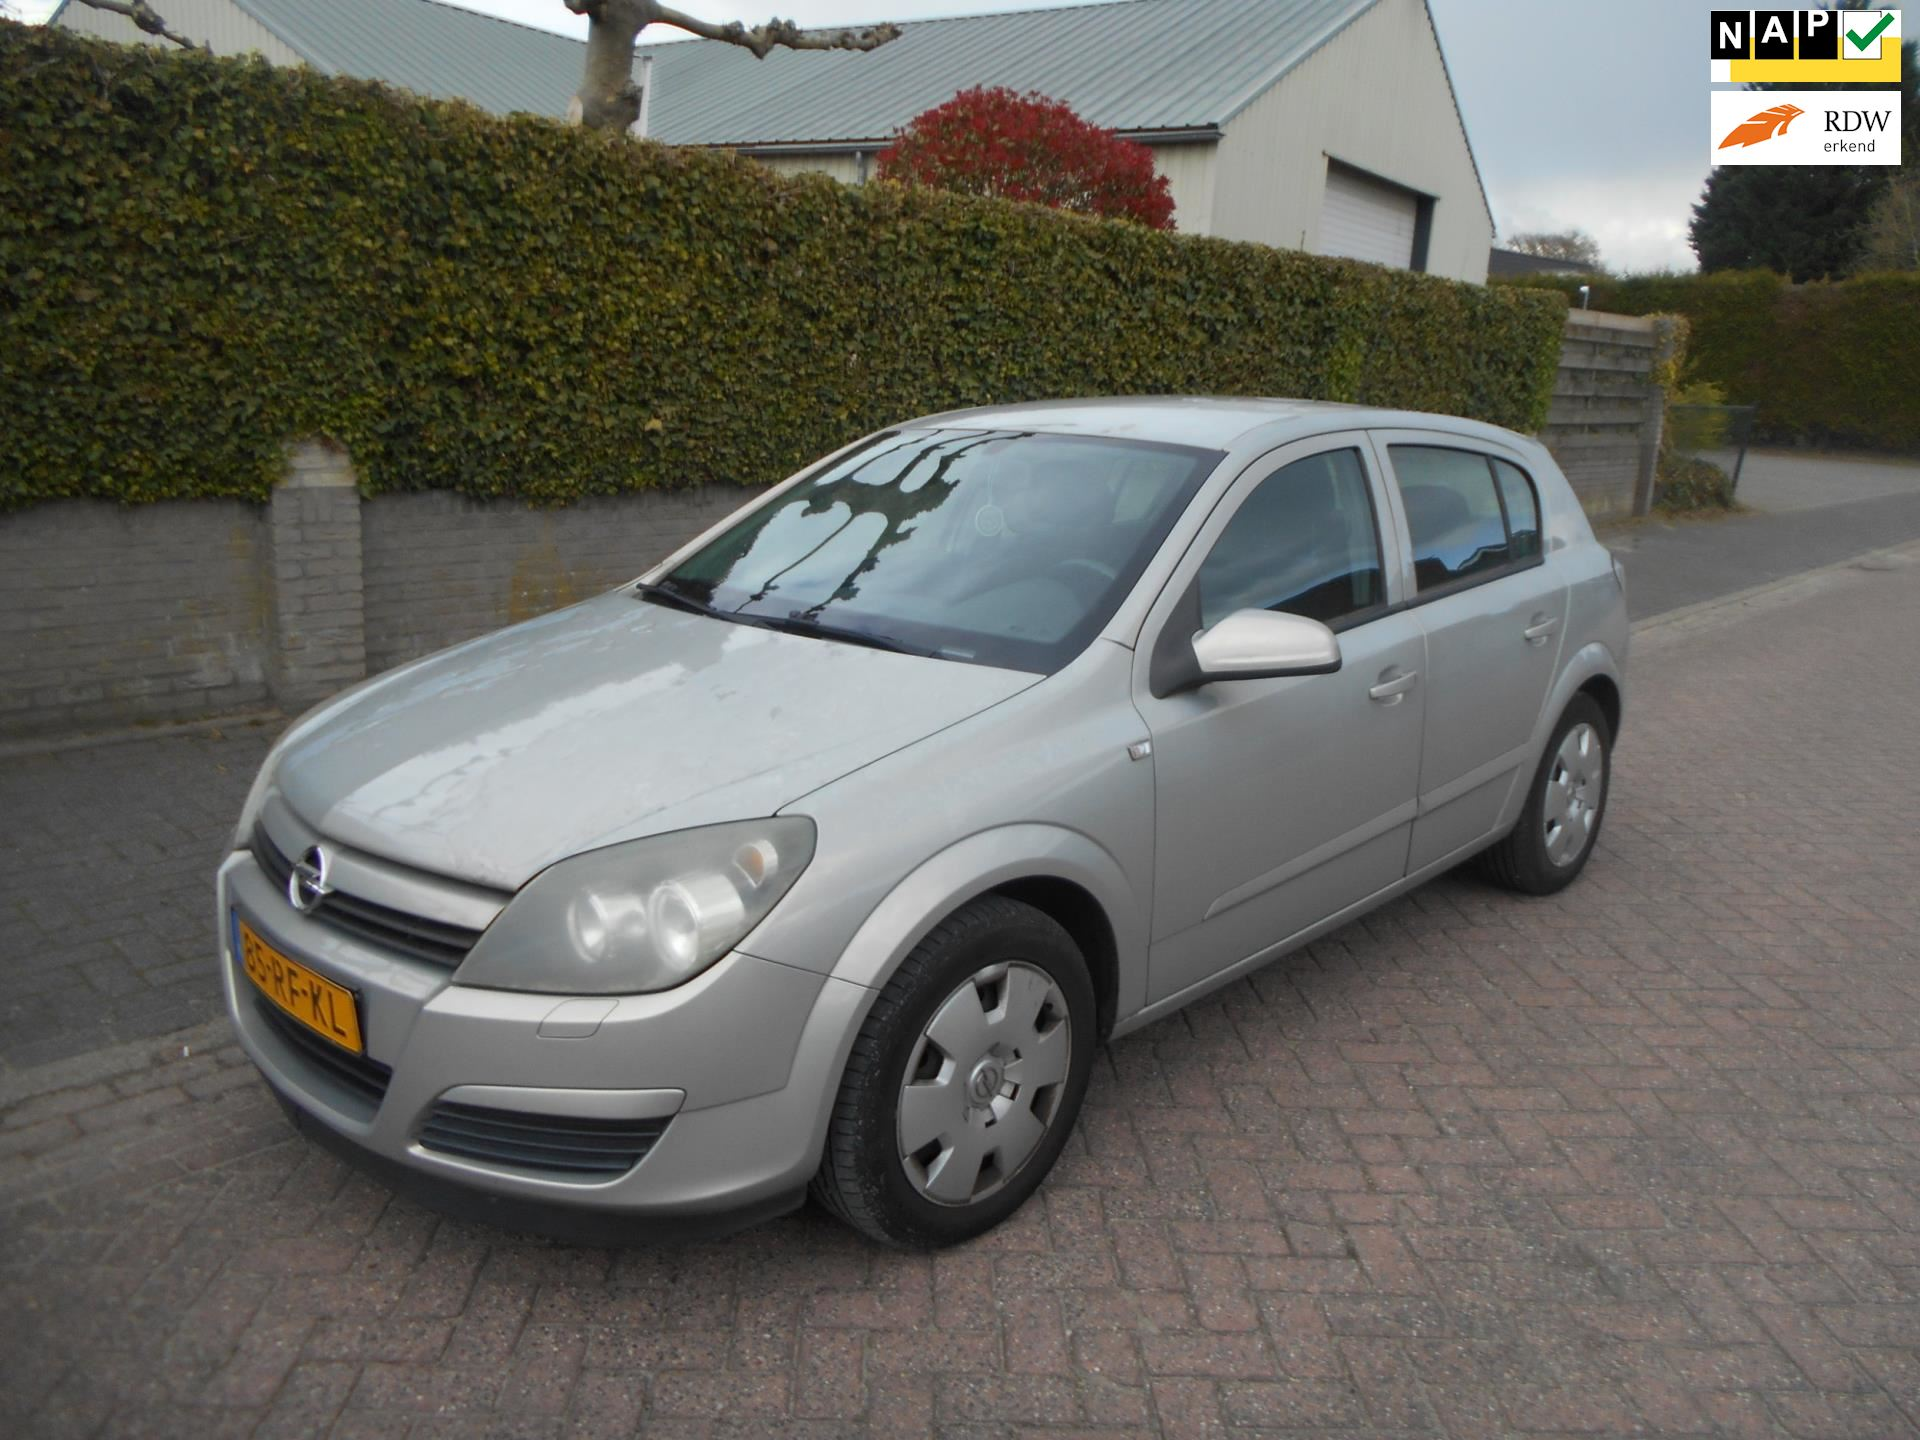 Opel Astra occasion - Solo Export B.V.